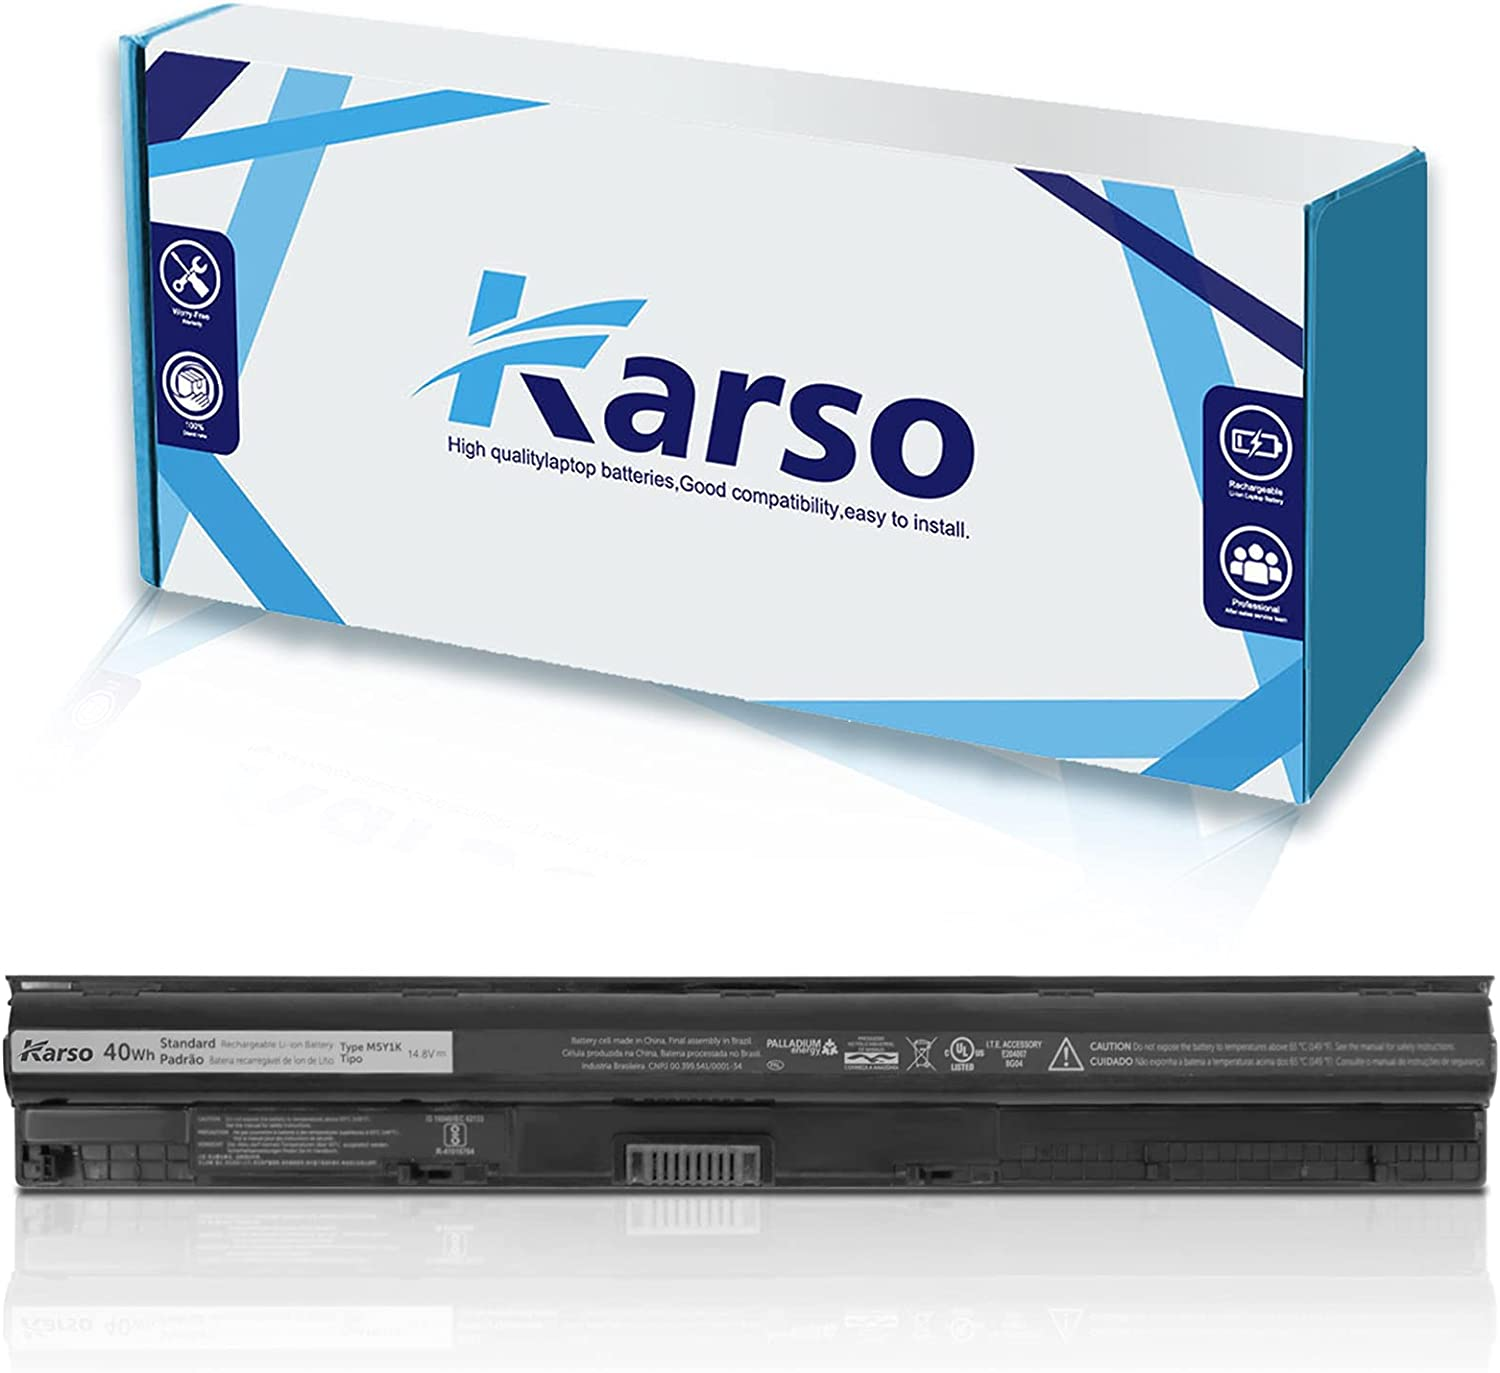 Karso 25% OFF M5Y1K Laptop Battery Compatible with Long Beach Mall Inspiron 14 Dell 15 1